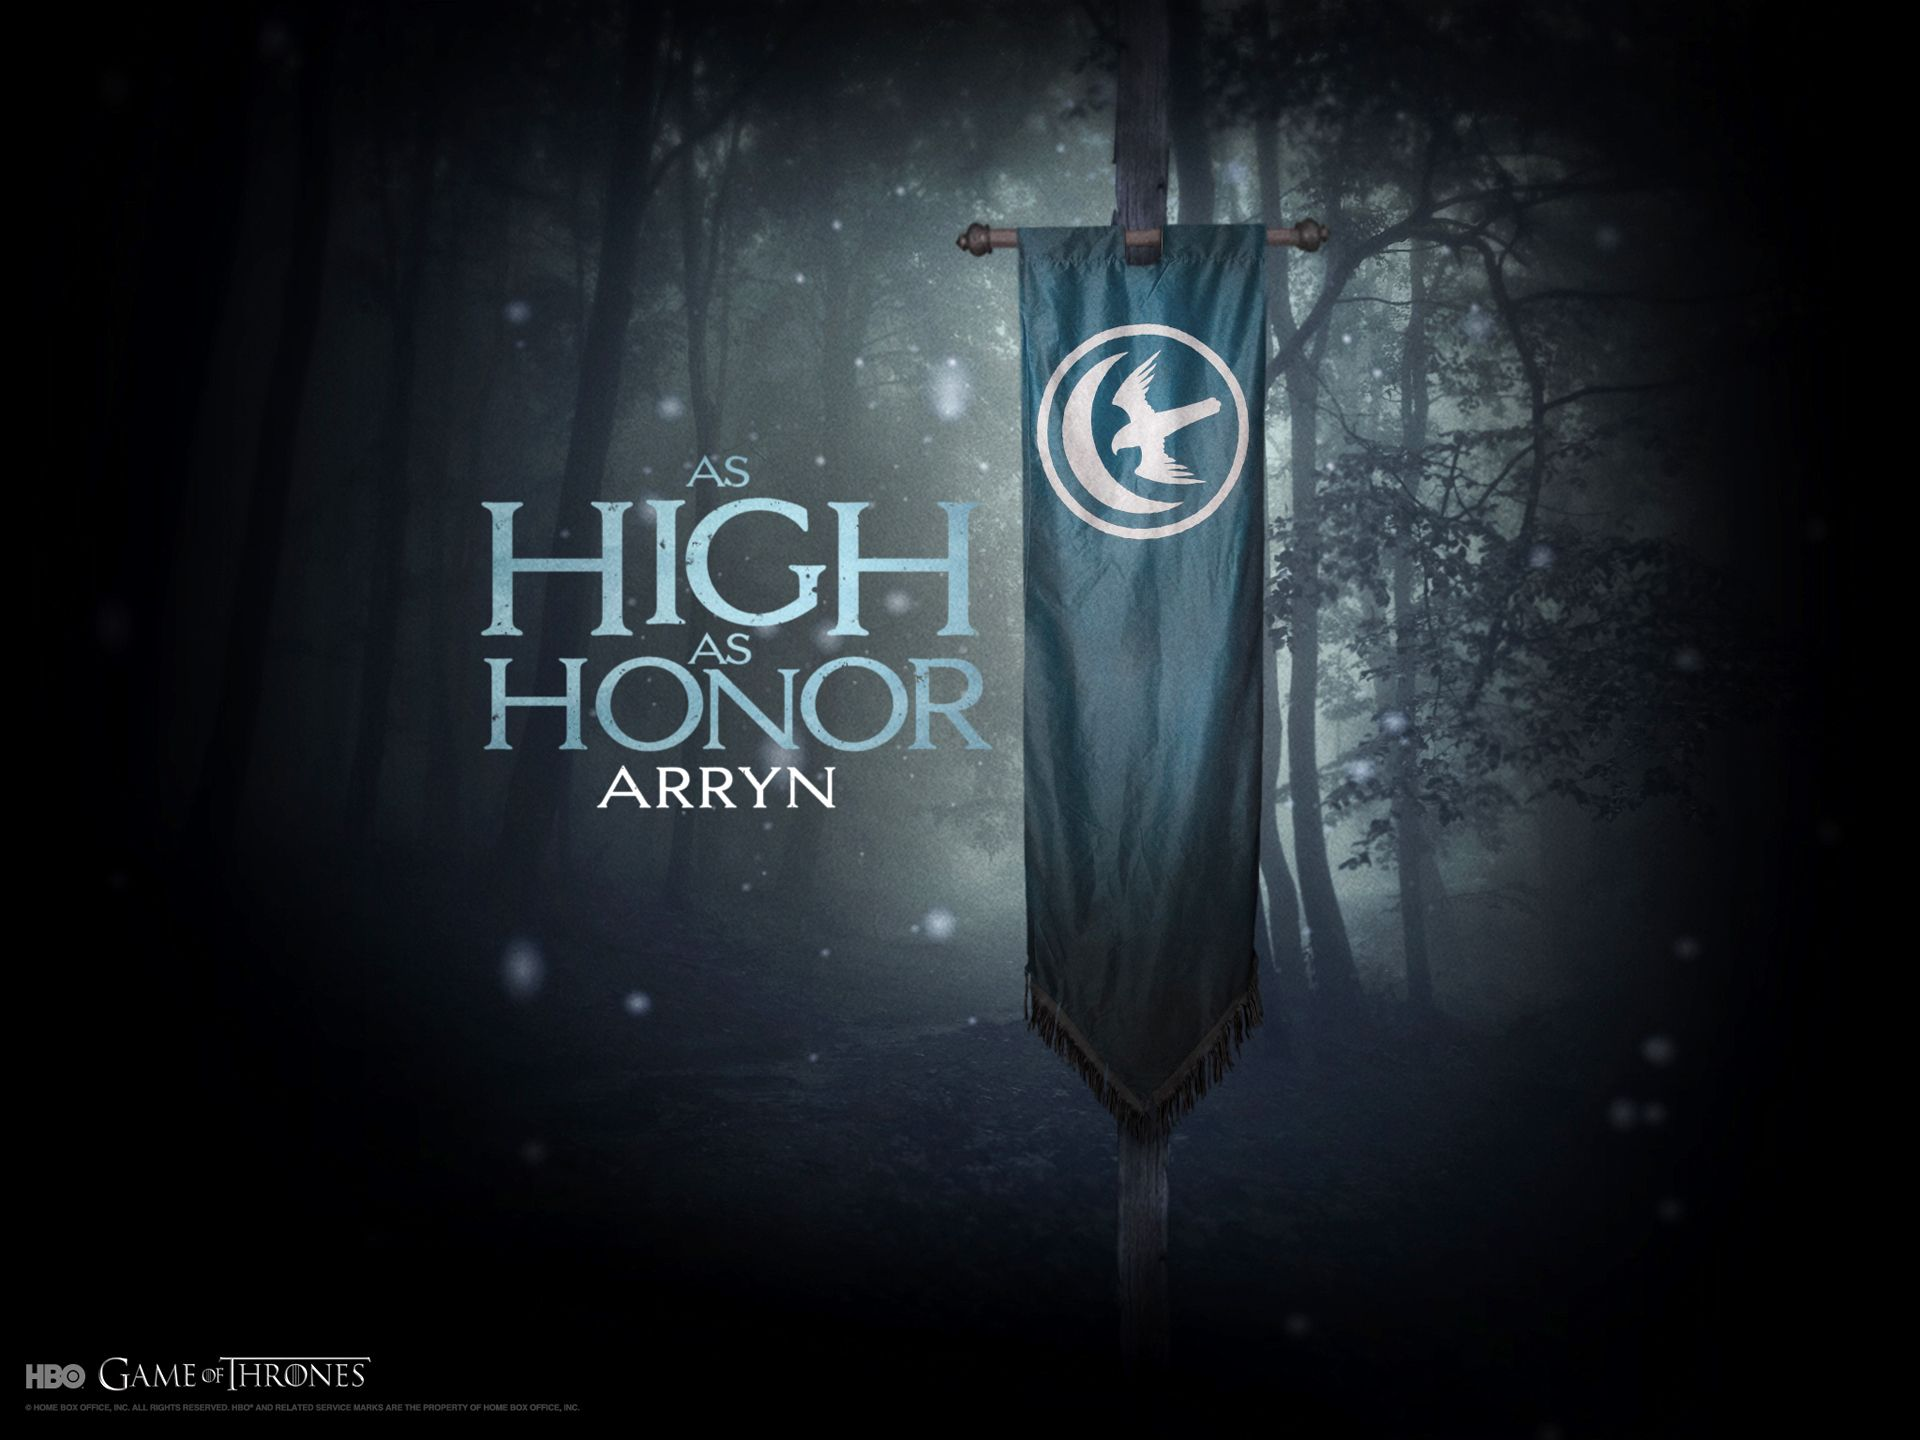 Game of thrones images game of thrones house arryn hd for House music 1996